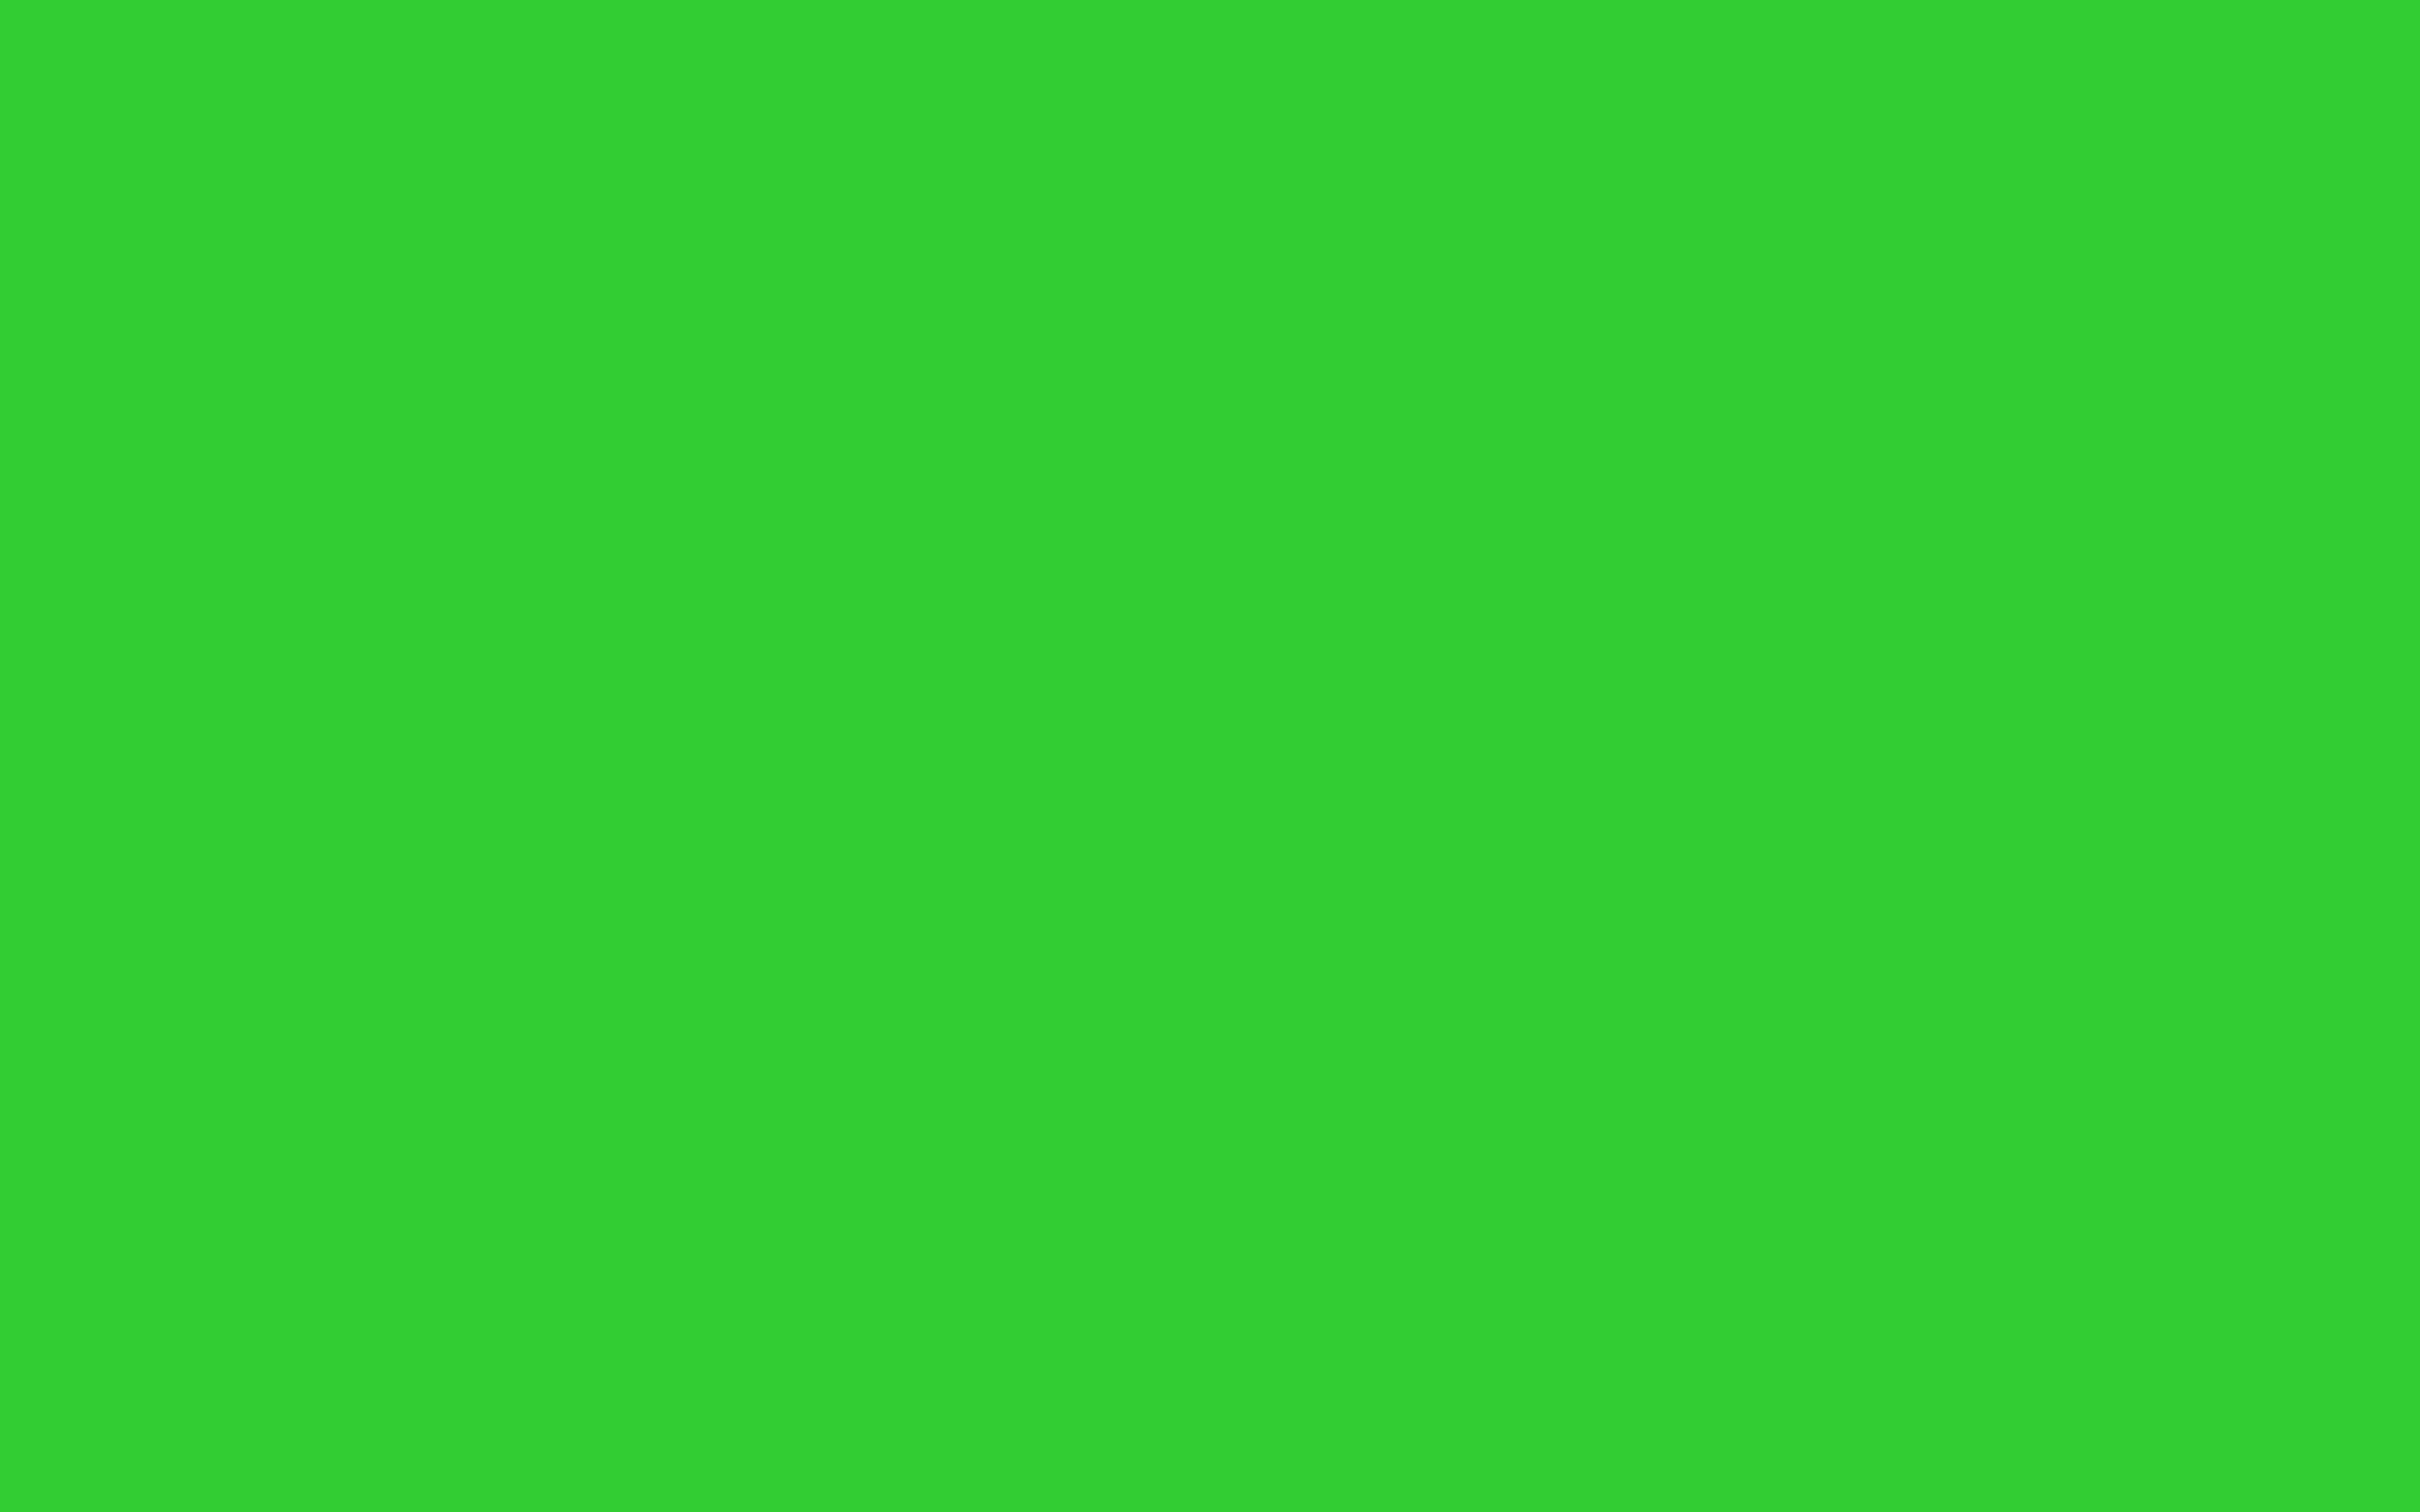 lime color background - photo #9